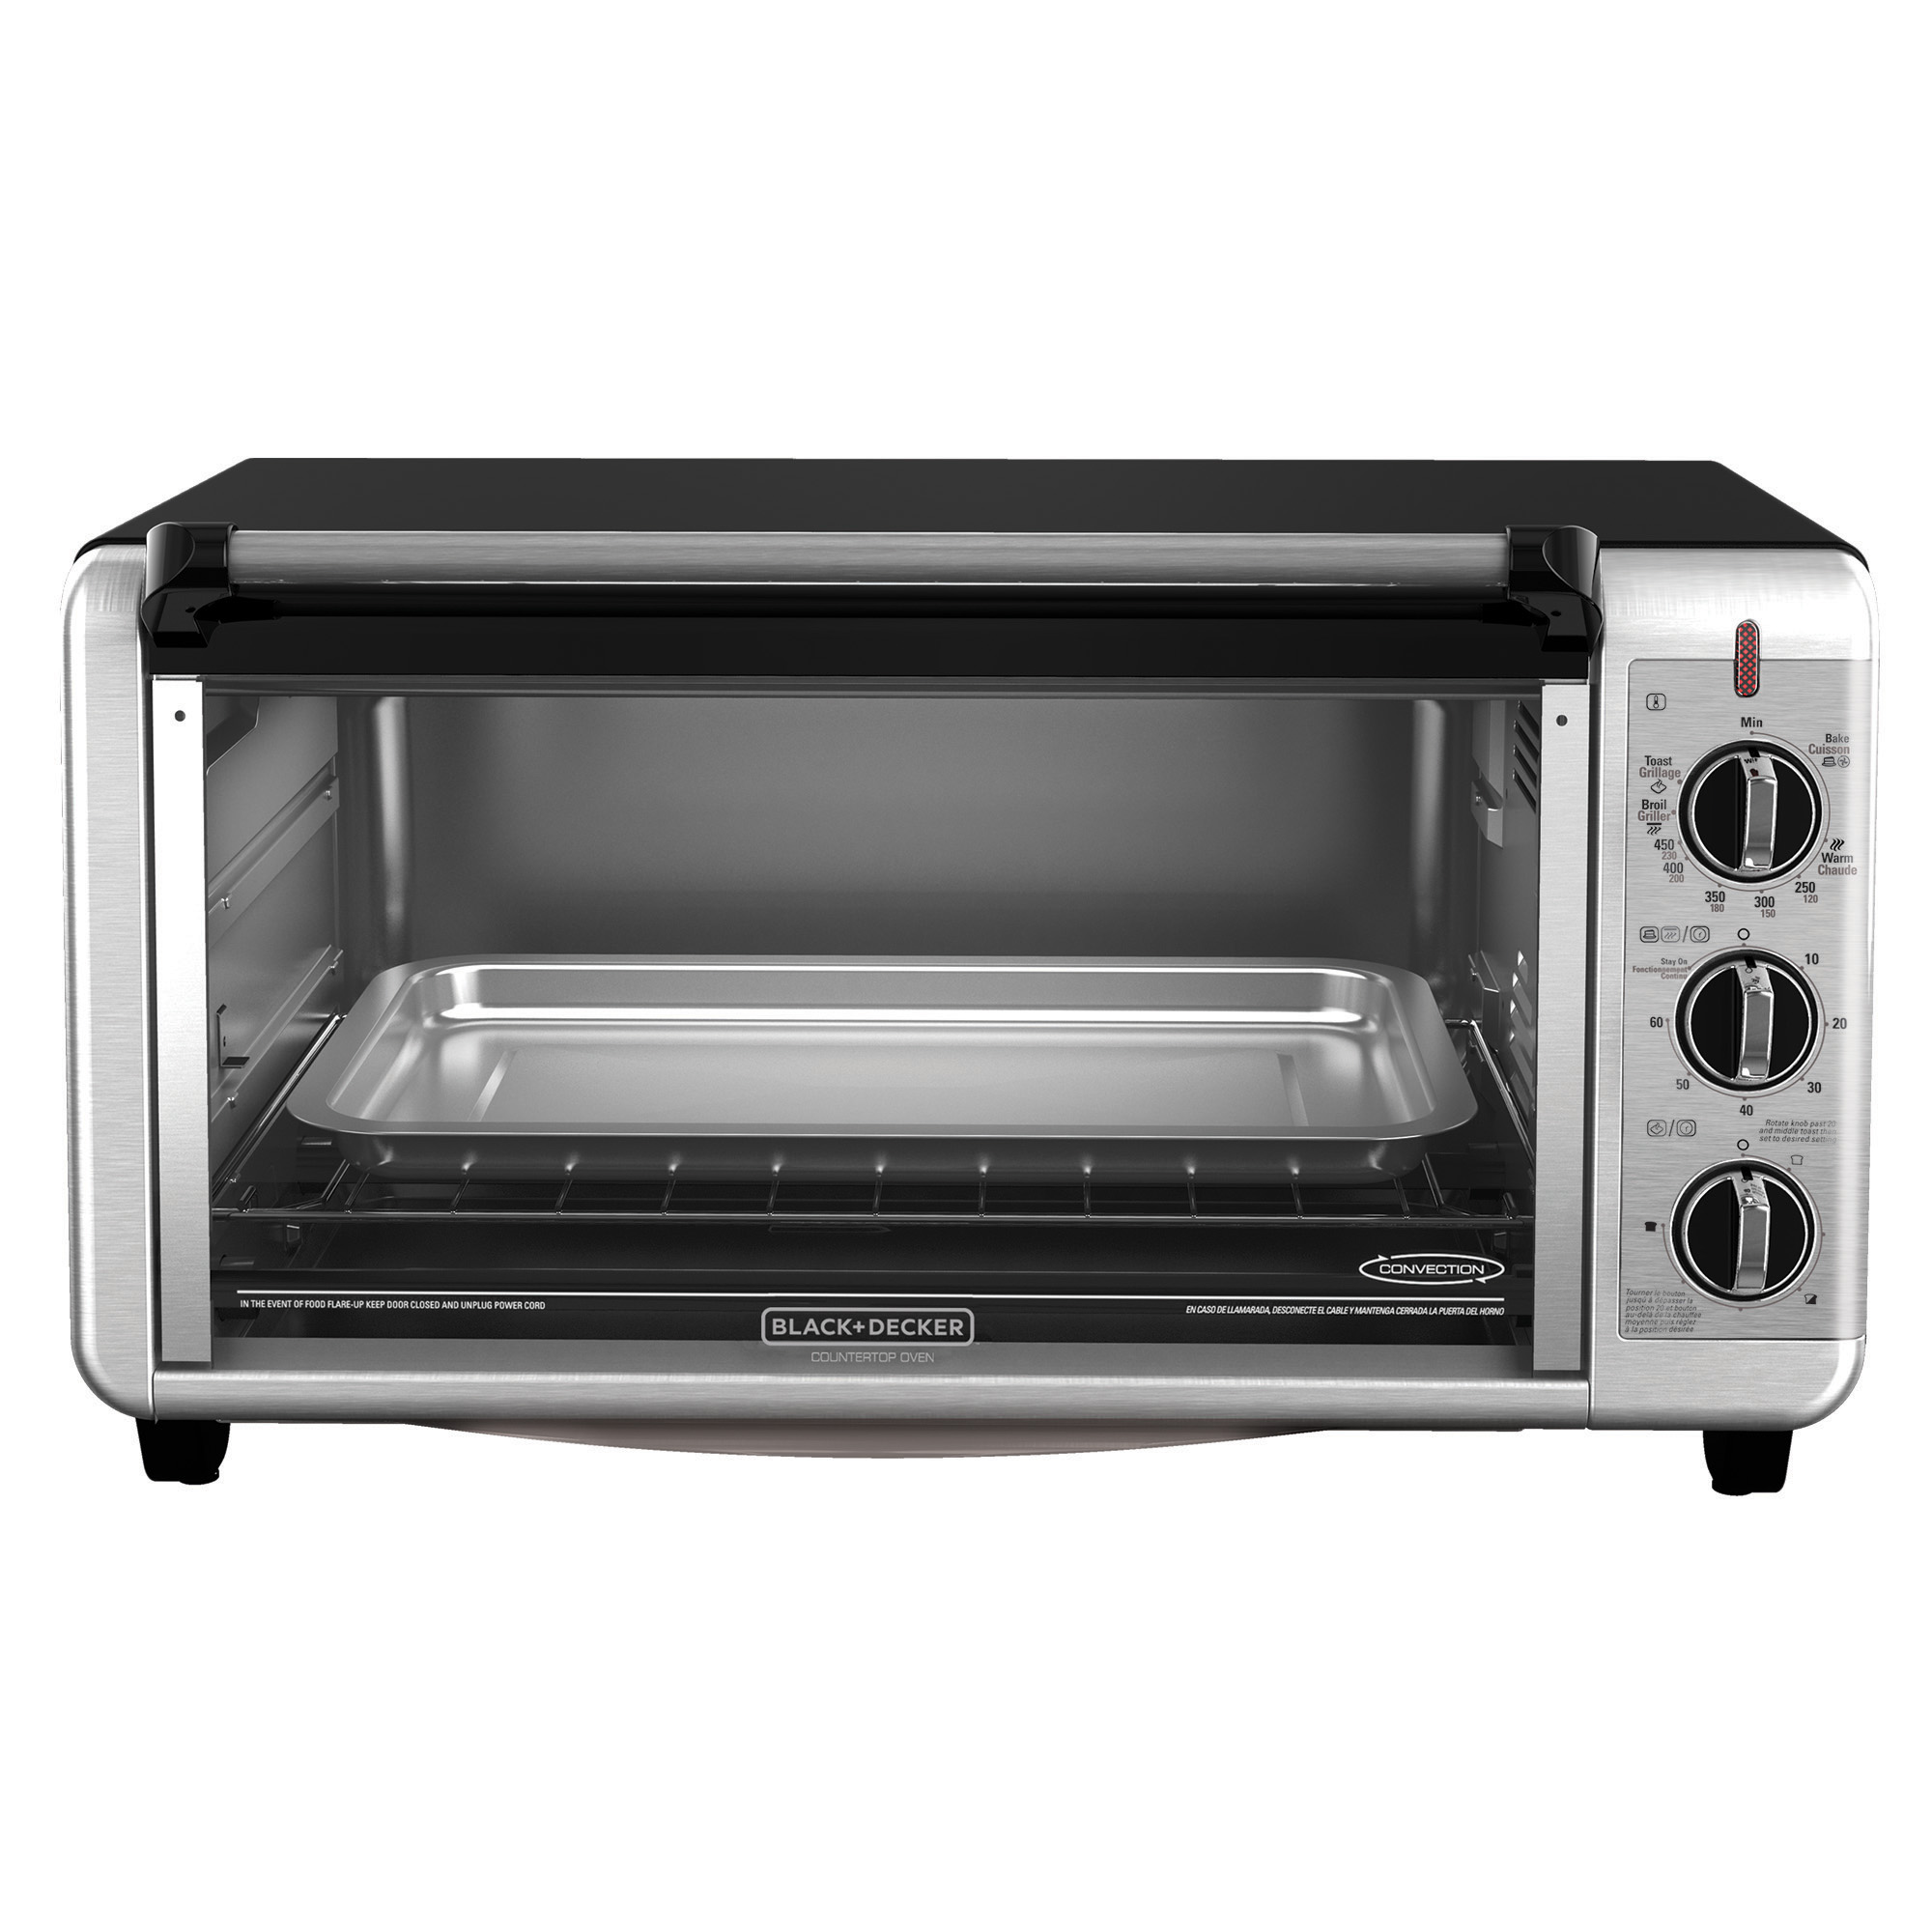 Wiring Diagram Black Decker Toaster Oven 40 Images And Diagrams 6 Slice Convection Countertop Silver To3000g